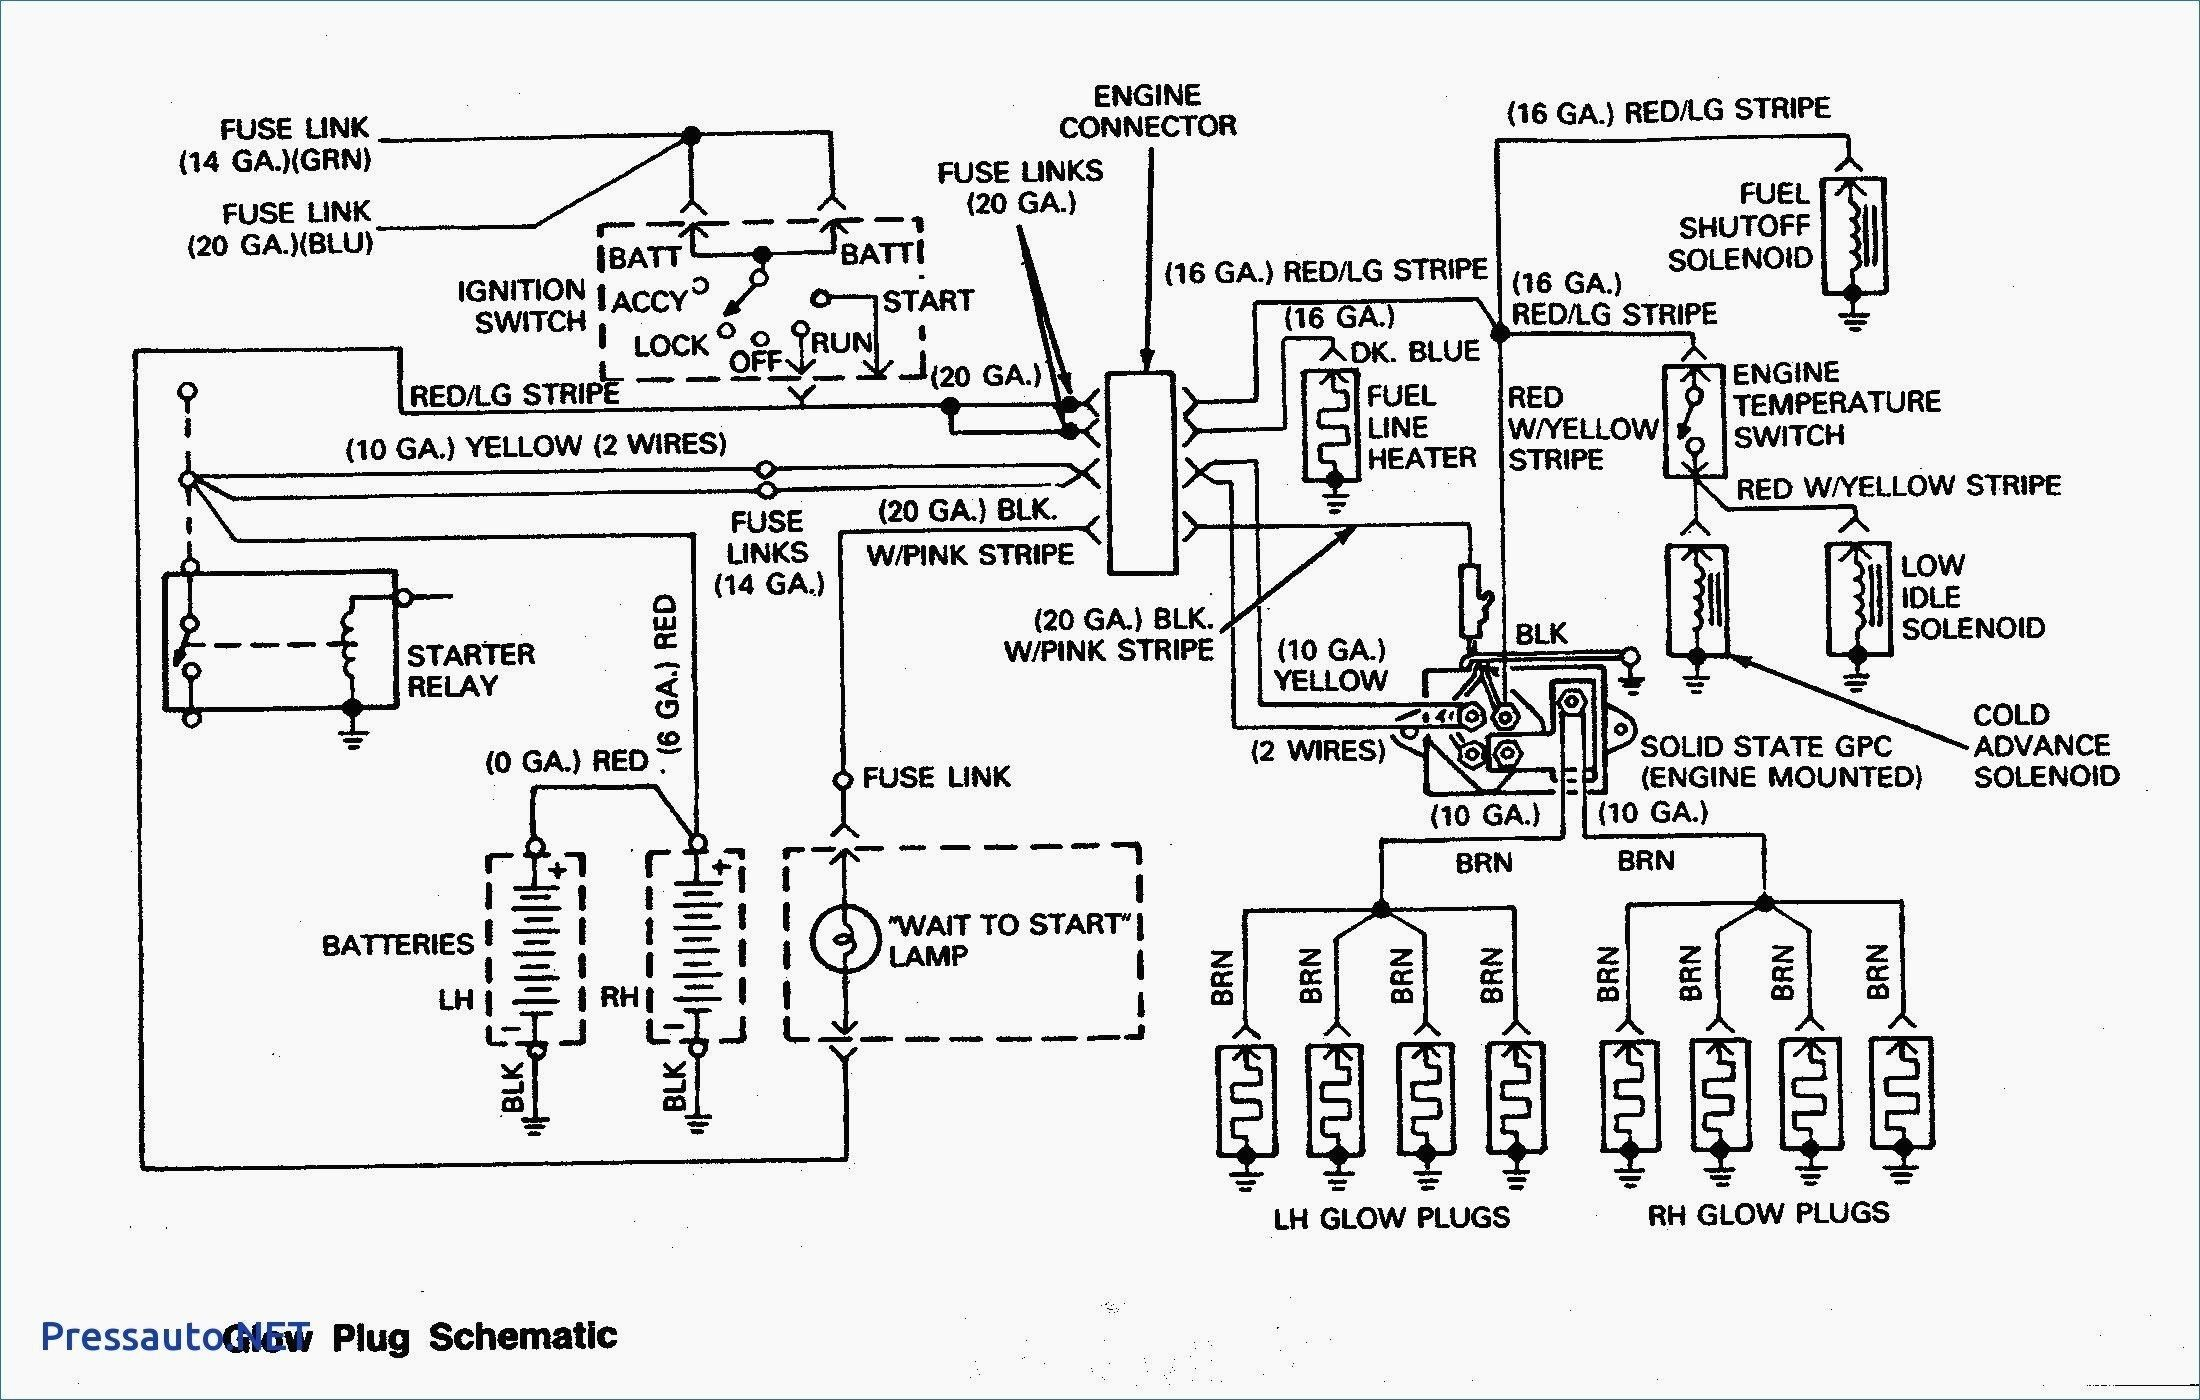 91 7.3 Idi Glow Plug Relay Wiring Diagram 7 3 Idi Glow Plug Relay Wiring Diagram Archives Of 91 7.3 Idi Glow Plug Relay Wiring Diagram